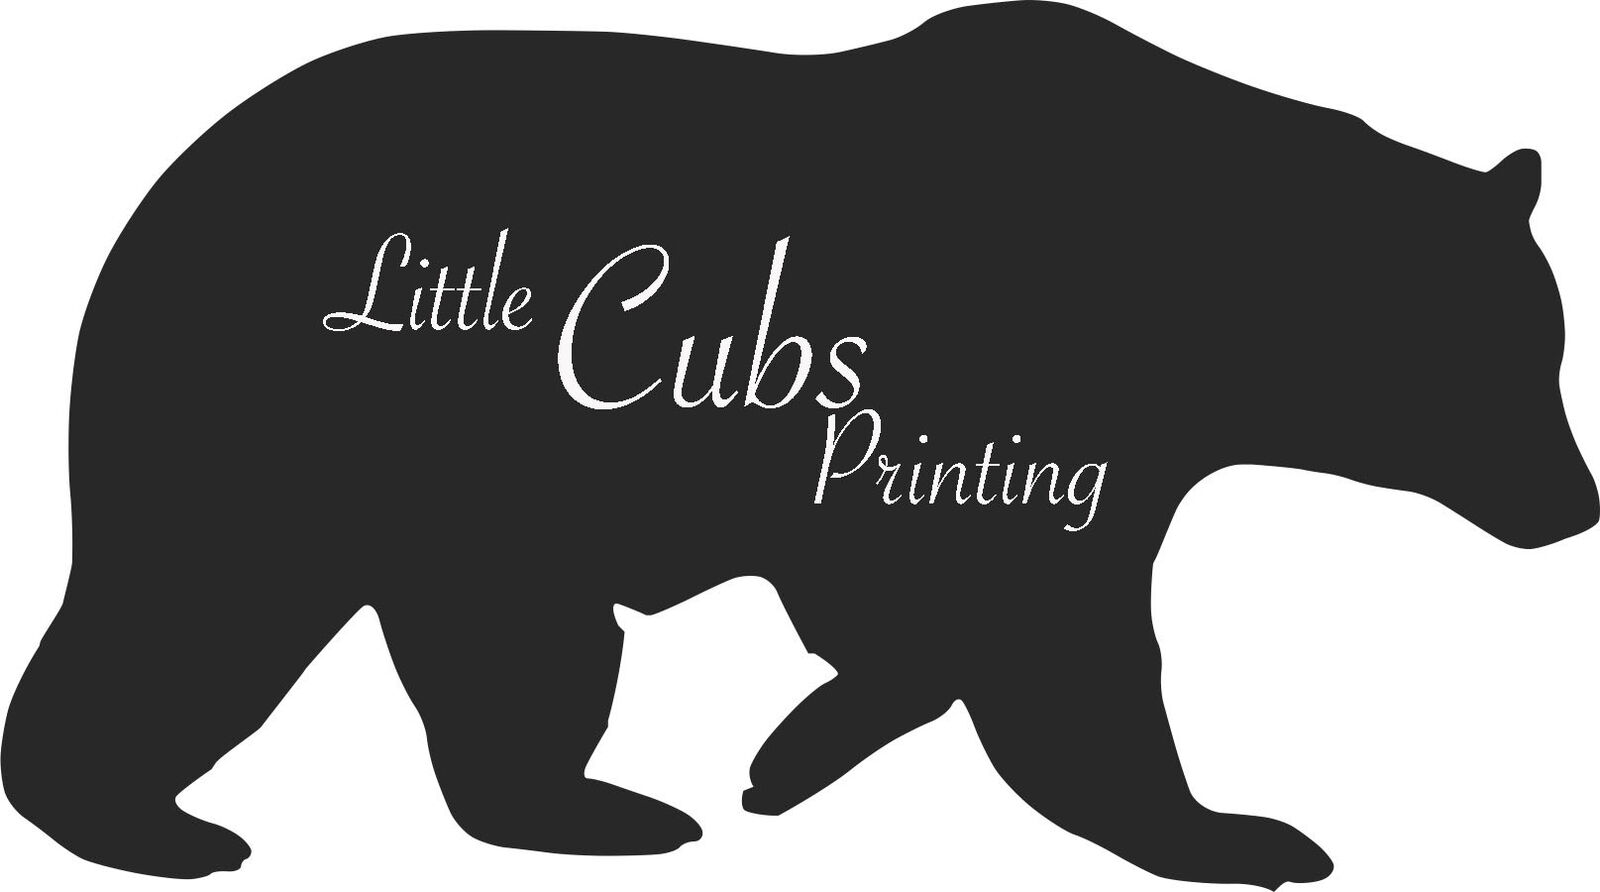 Little Cubs Printing